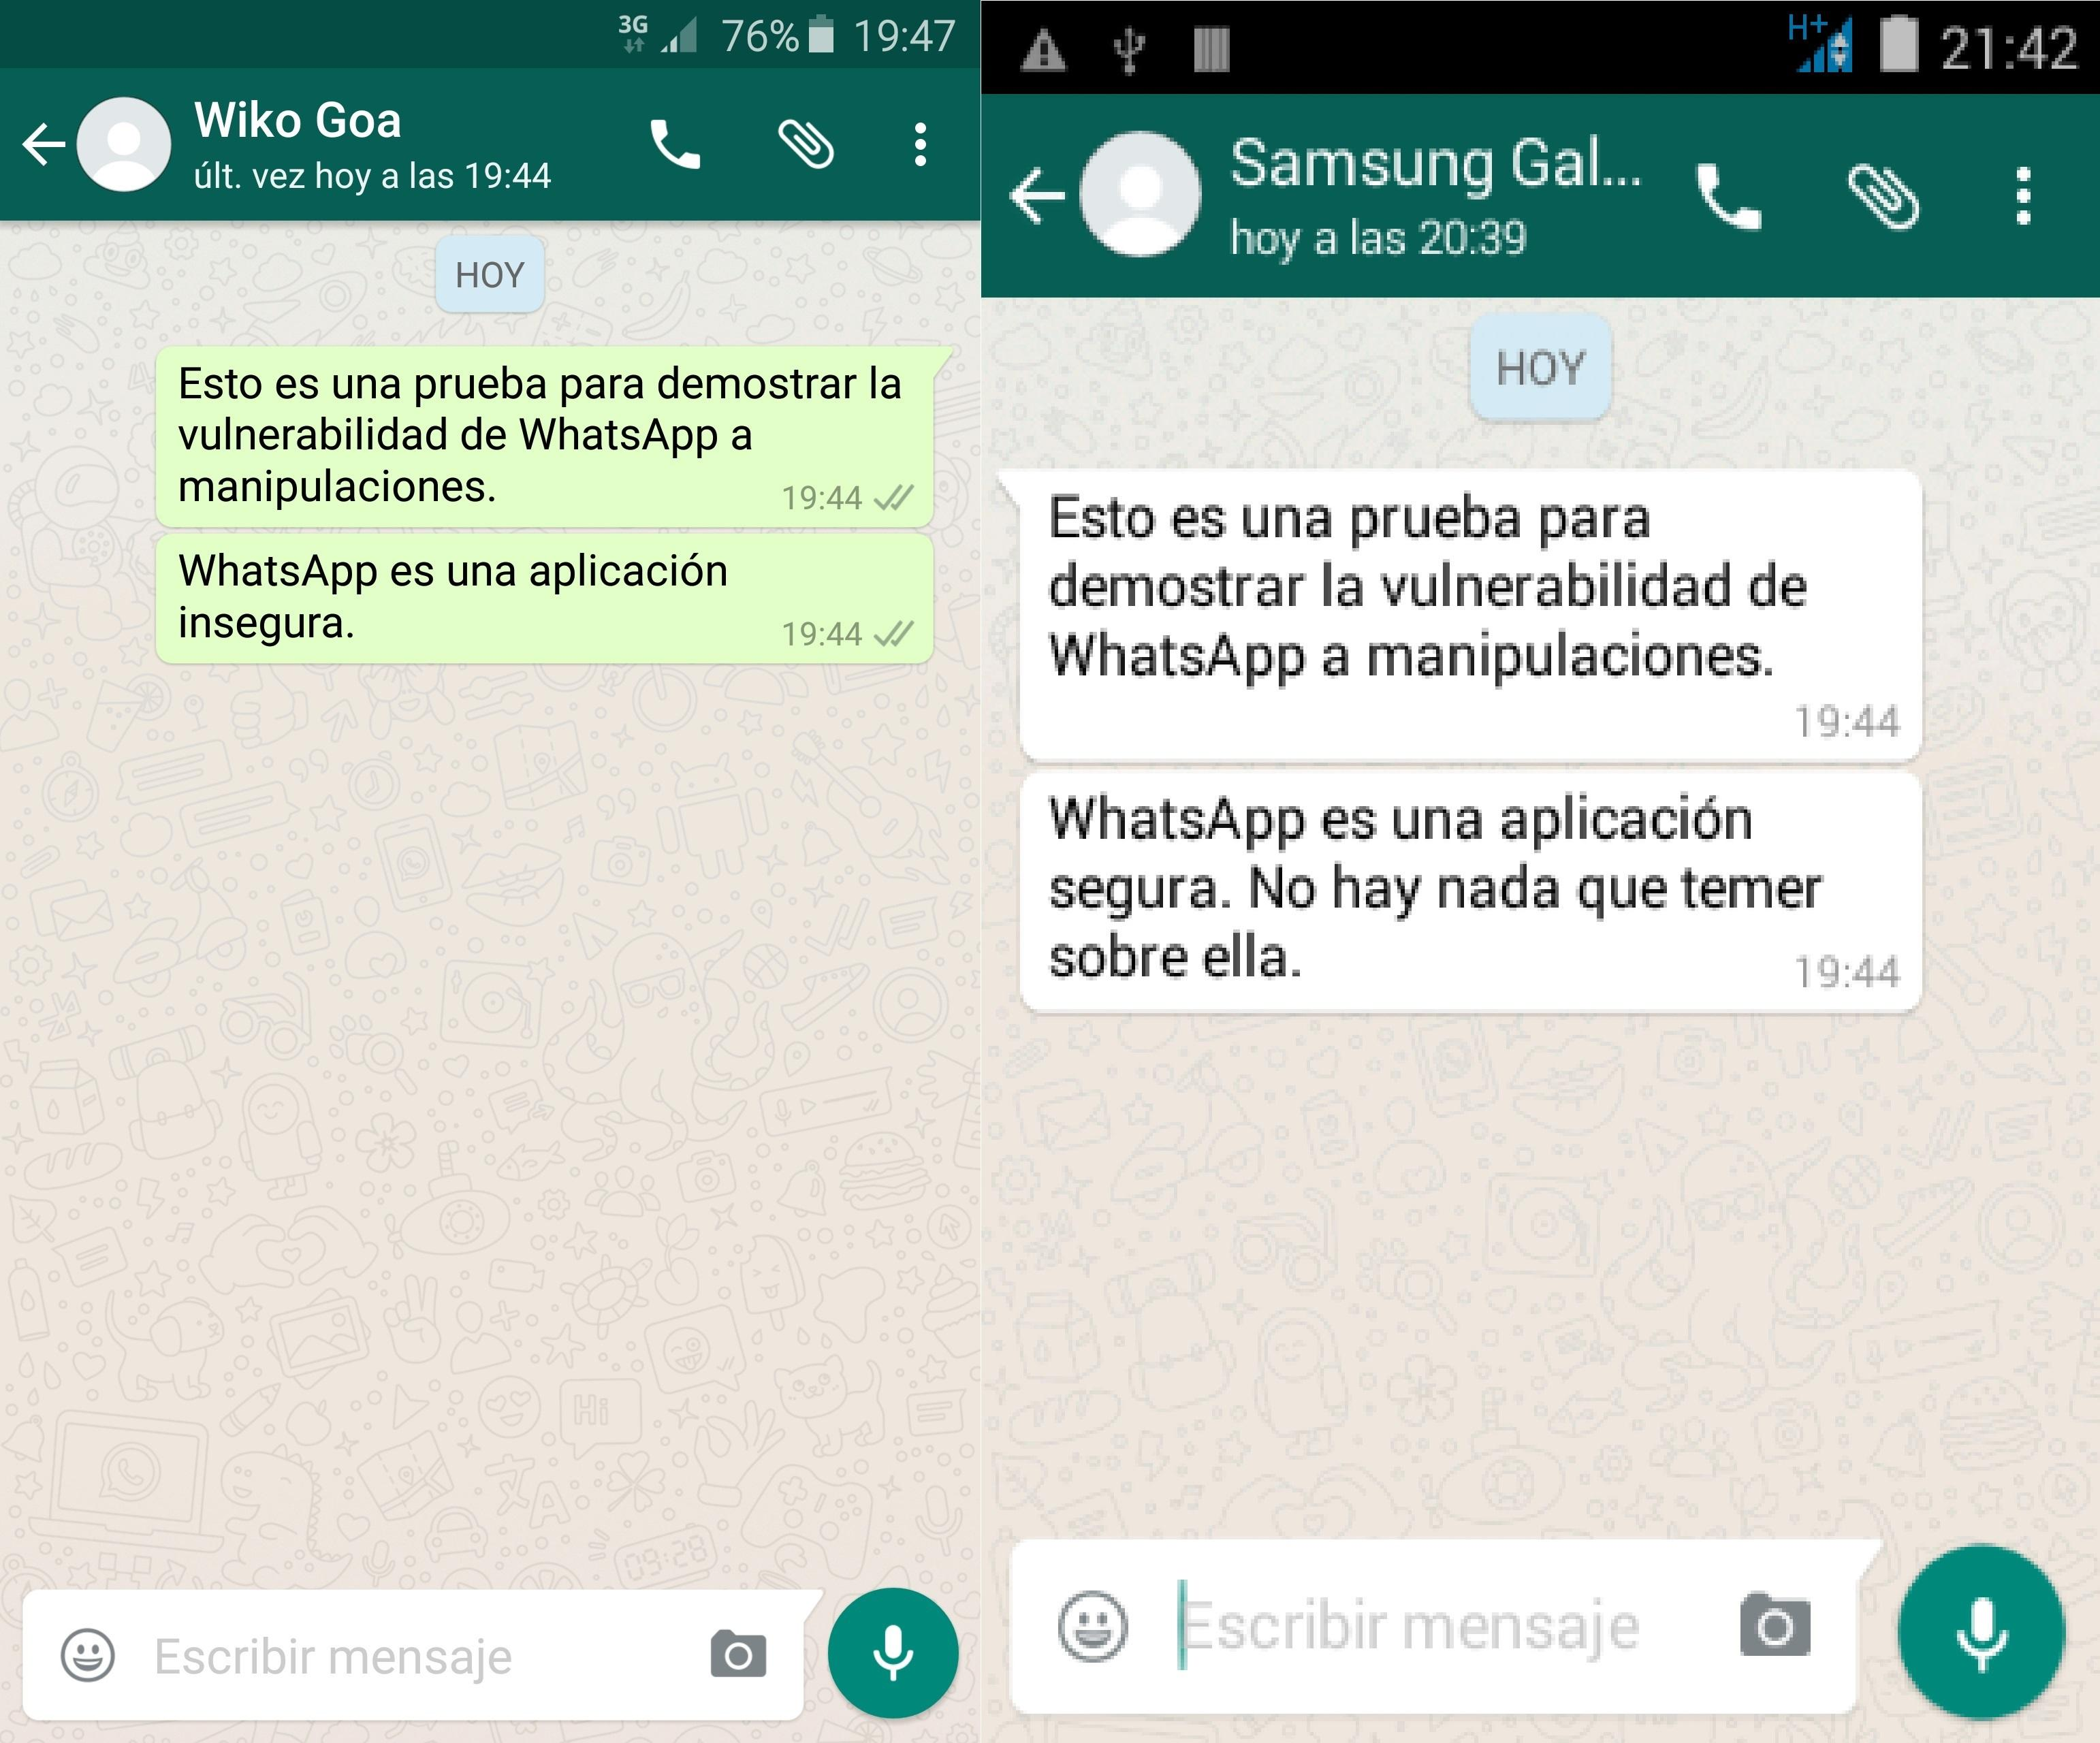 how to see who is online in whatsapp